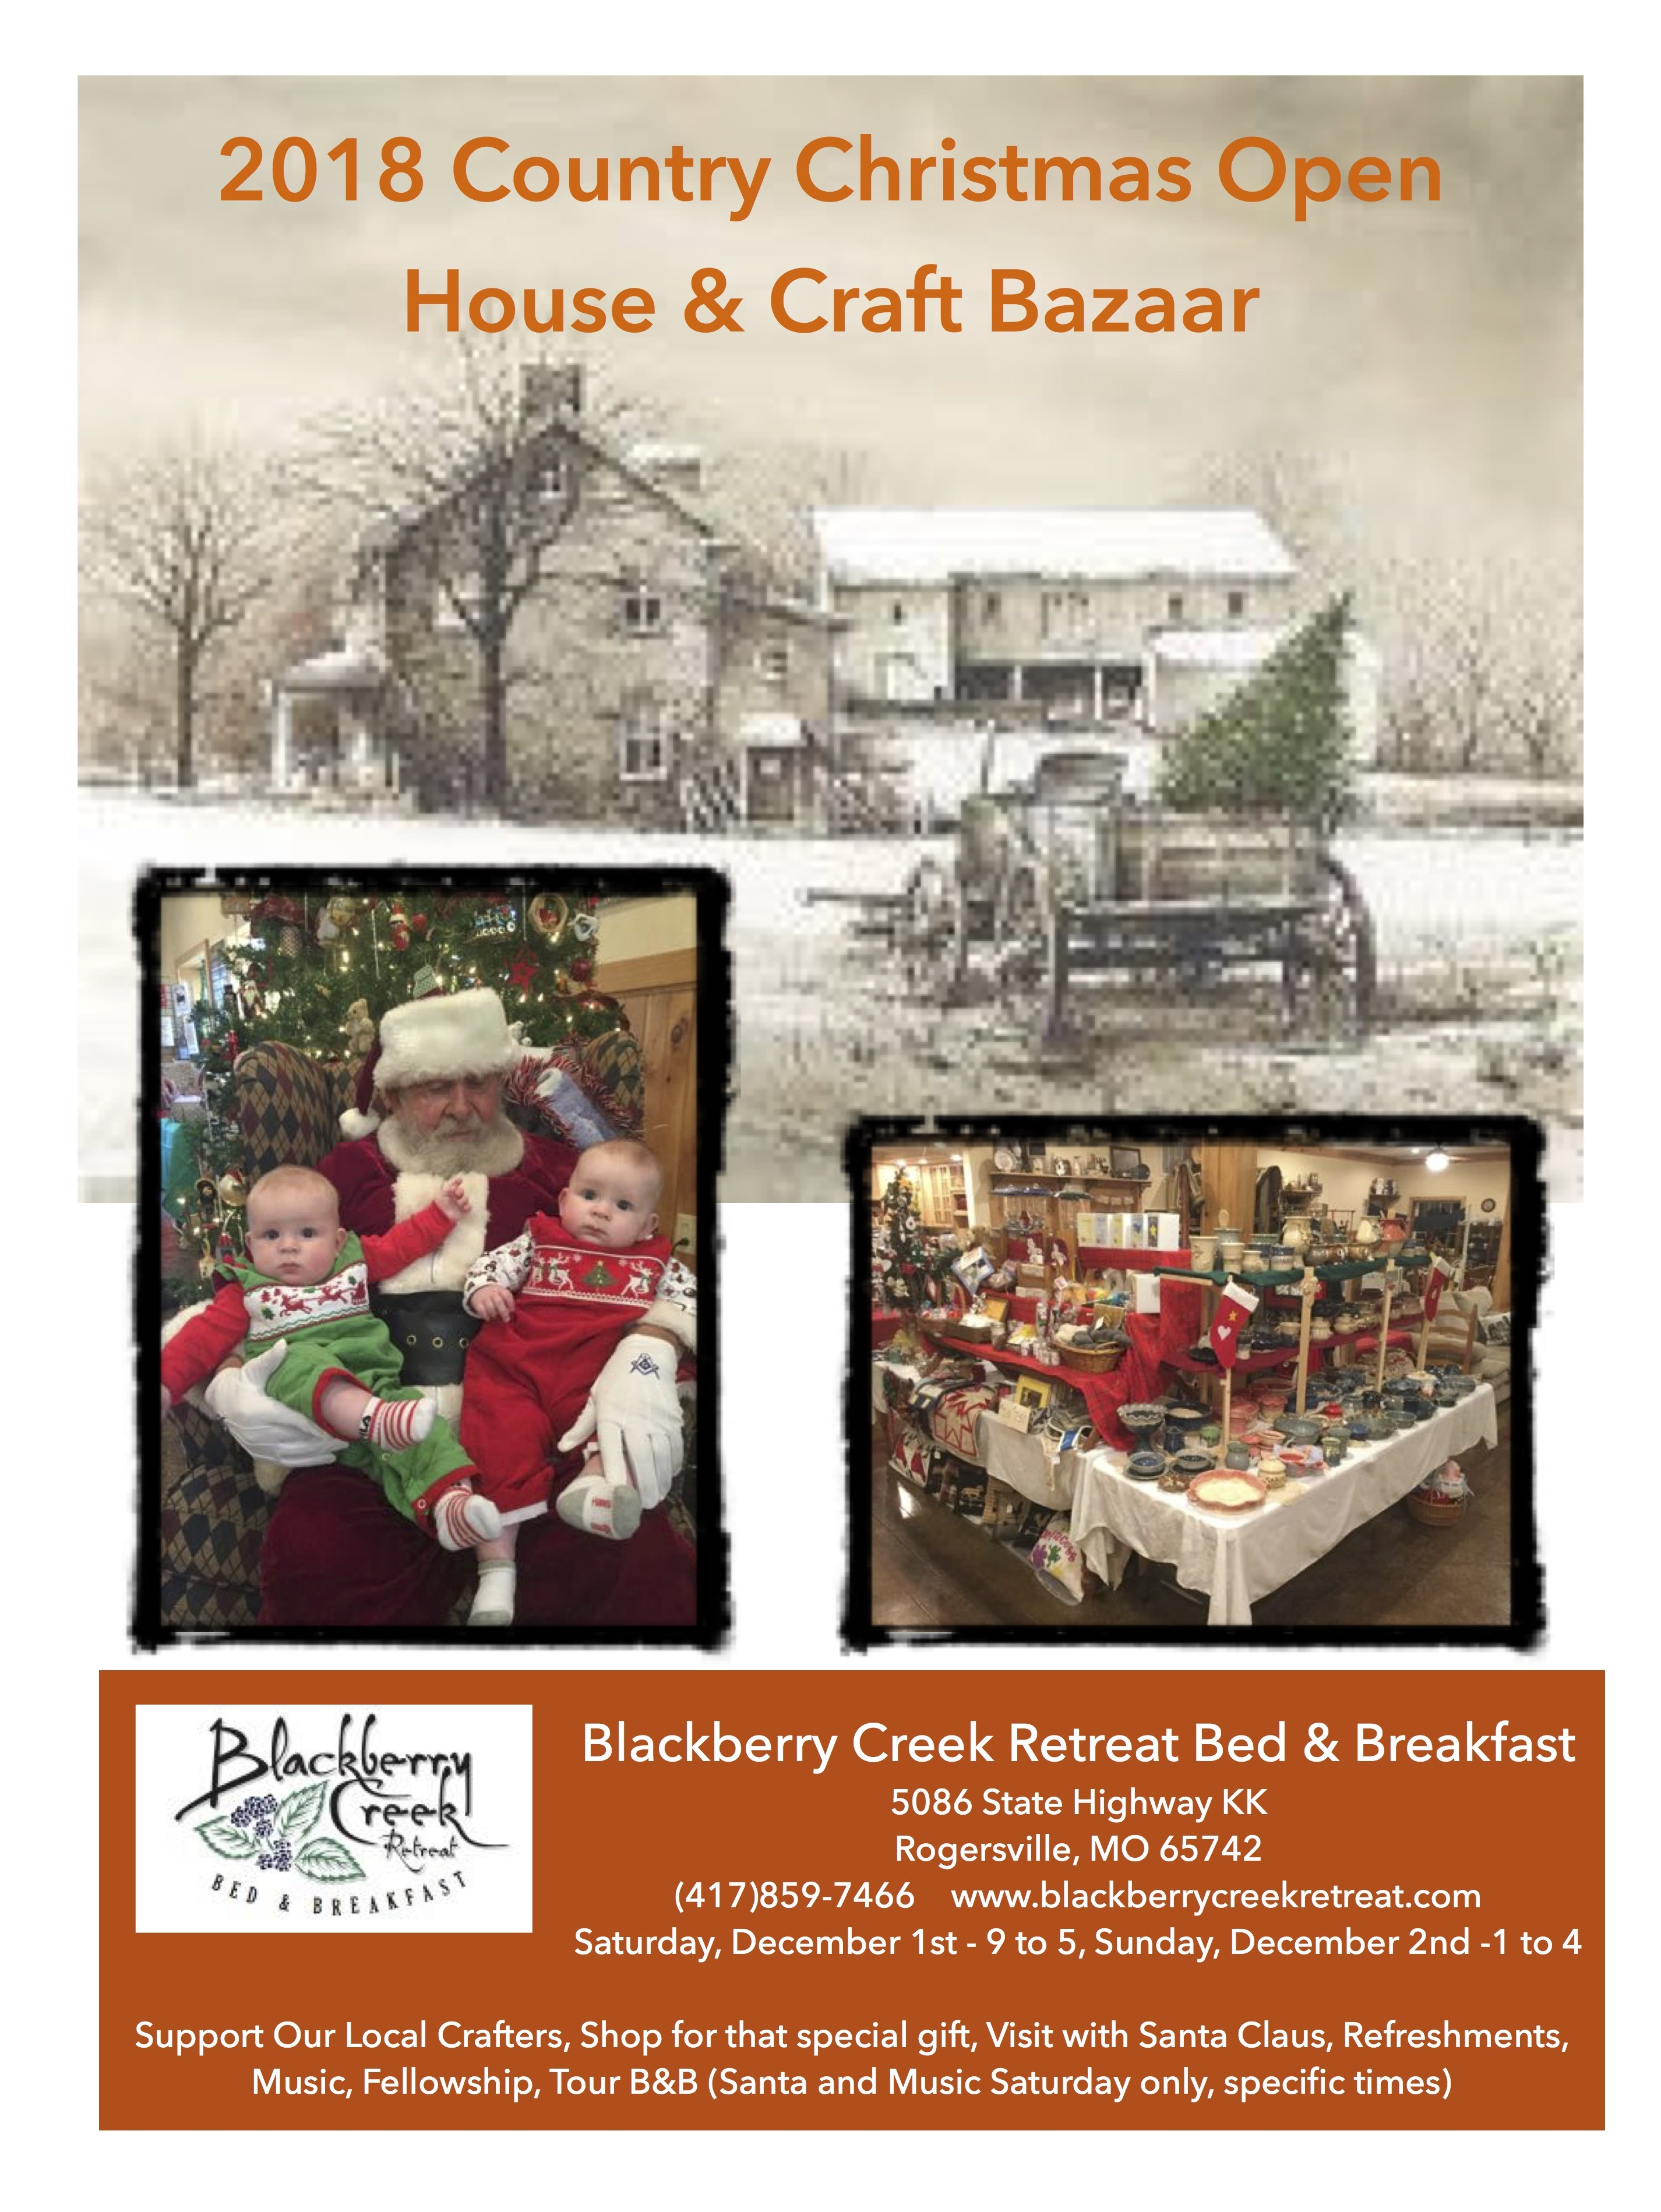 2018 Country Christmas Open House & Craft Bazaar